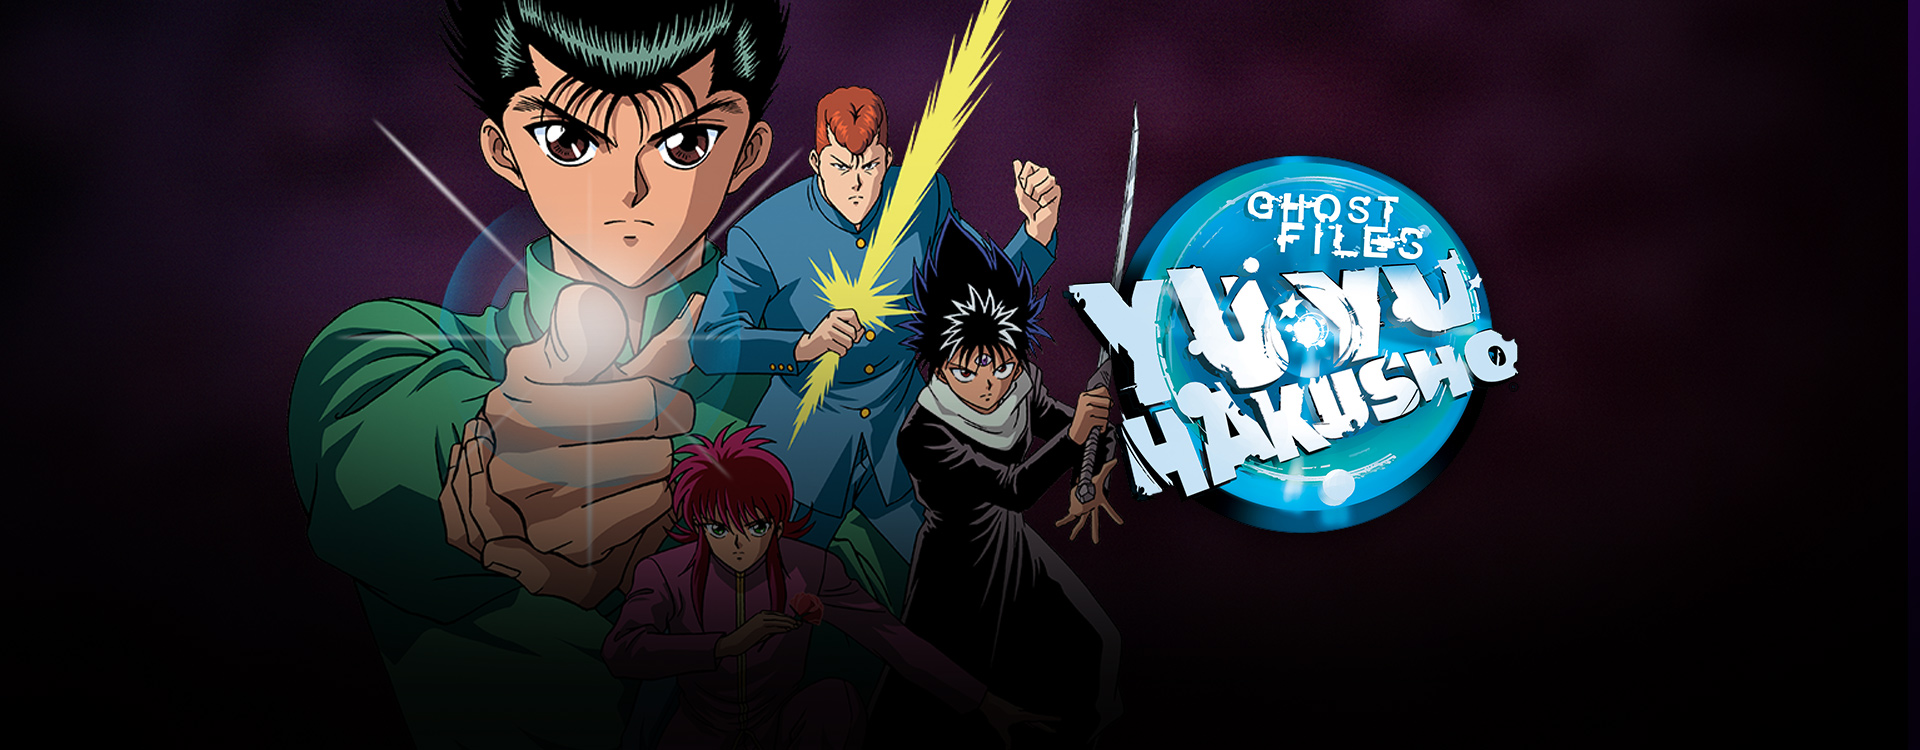 Stream Watch Yu Yu Hakusho Episodes Online